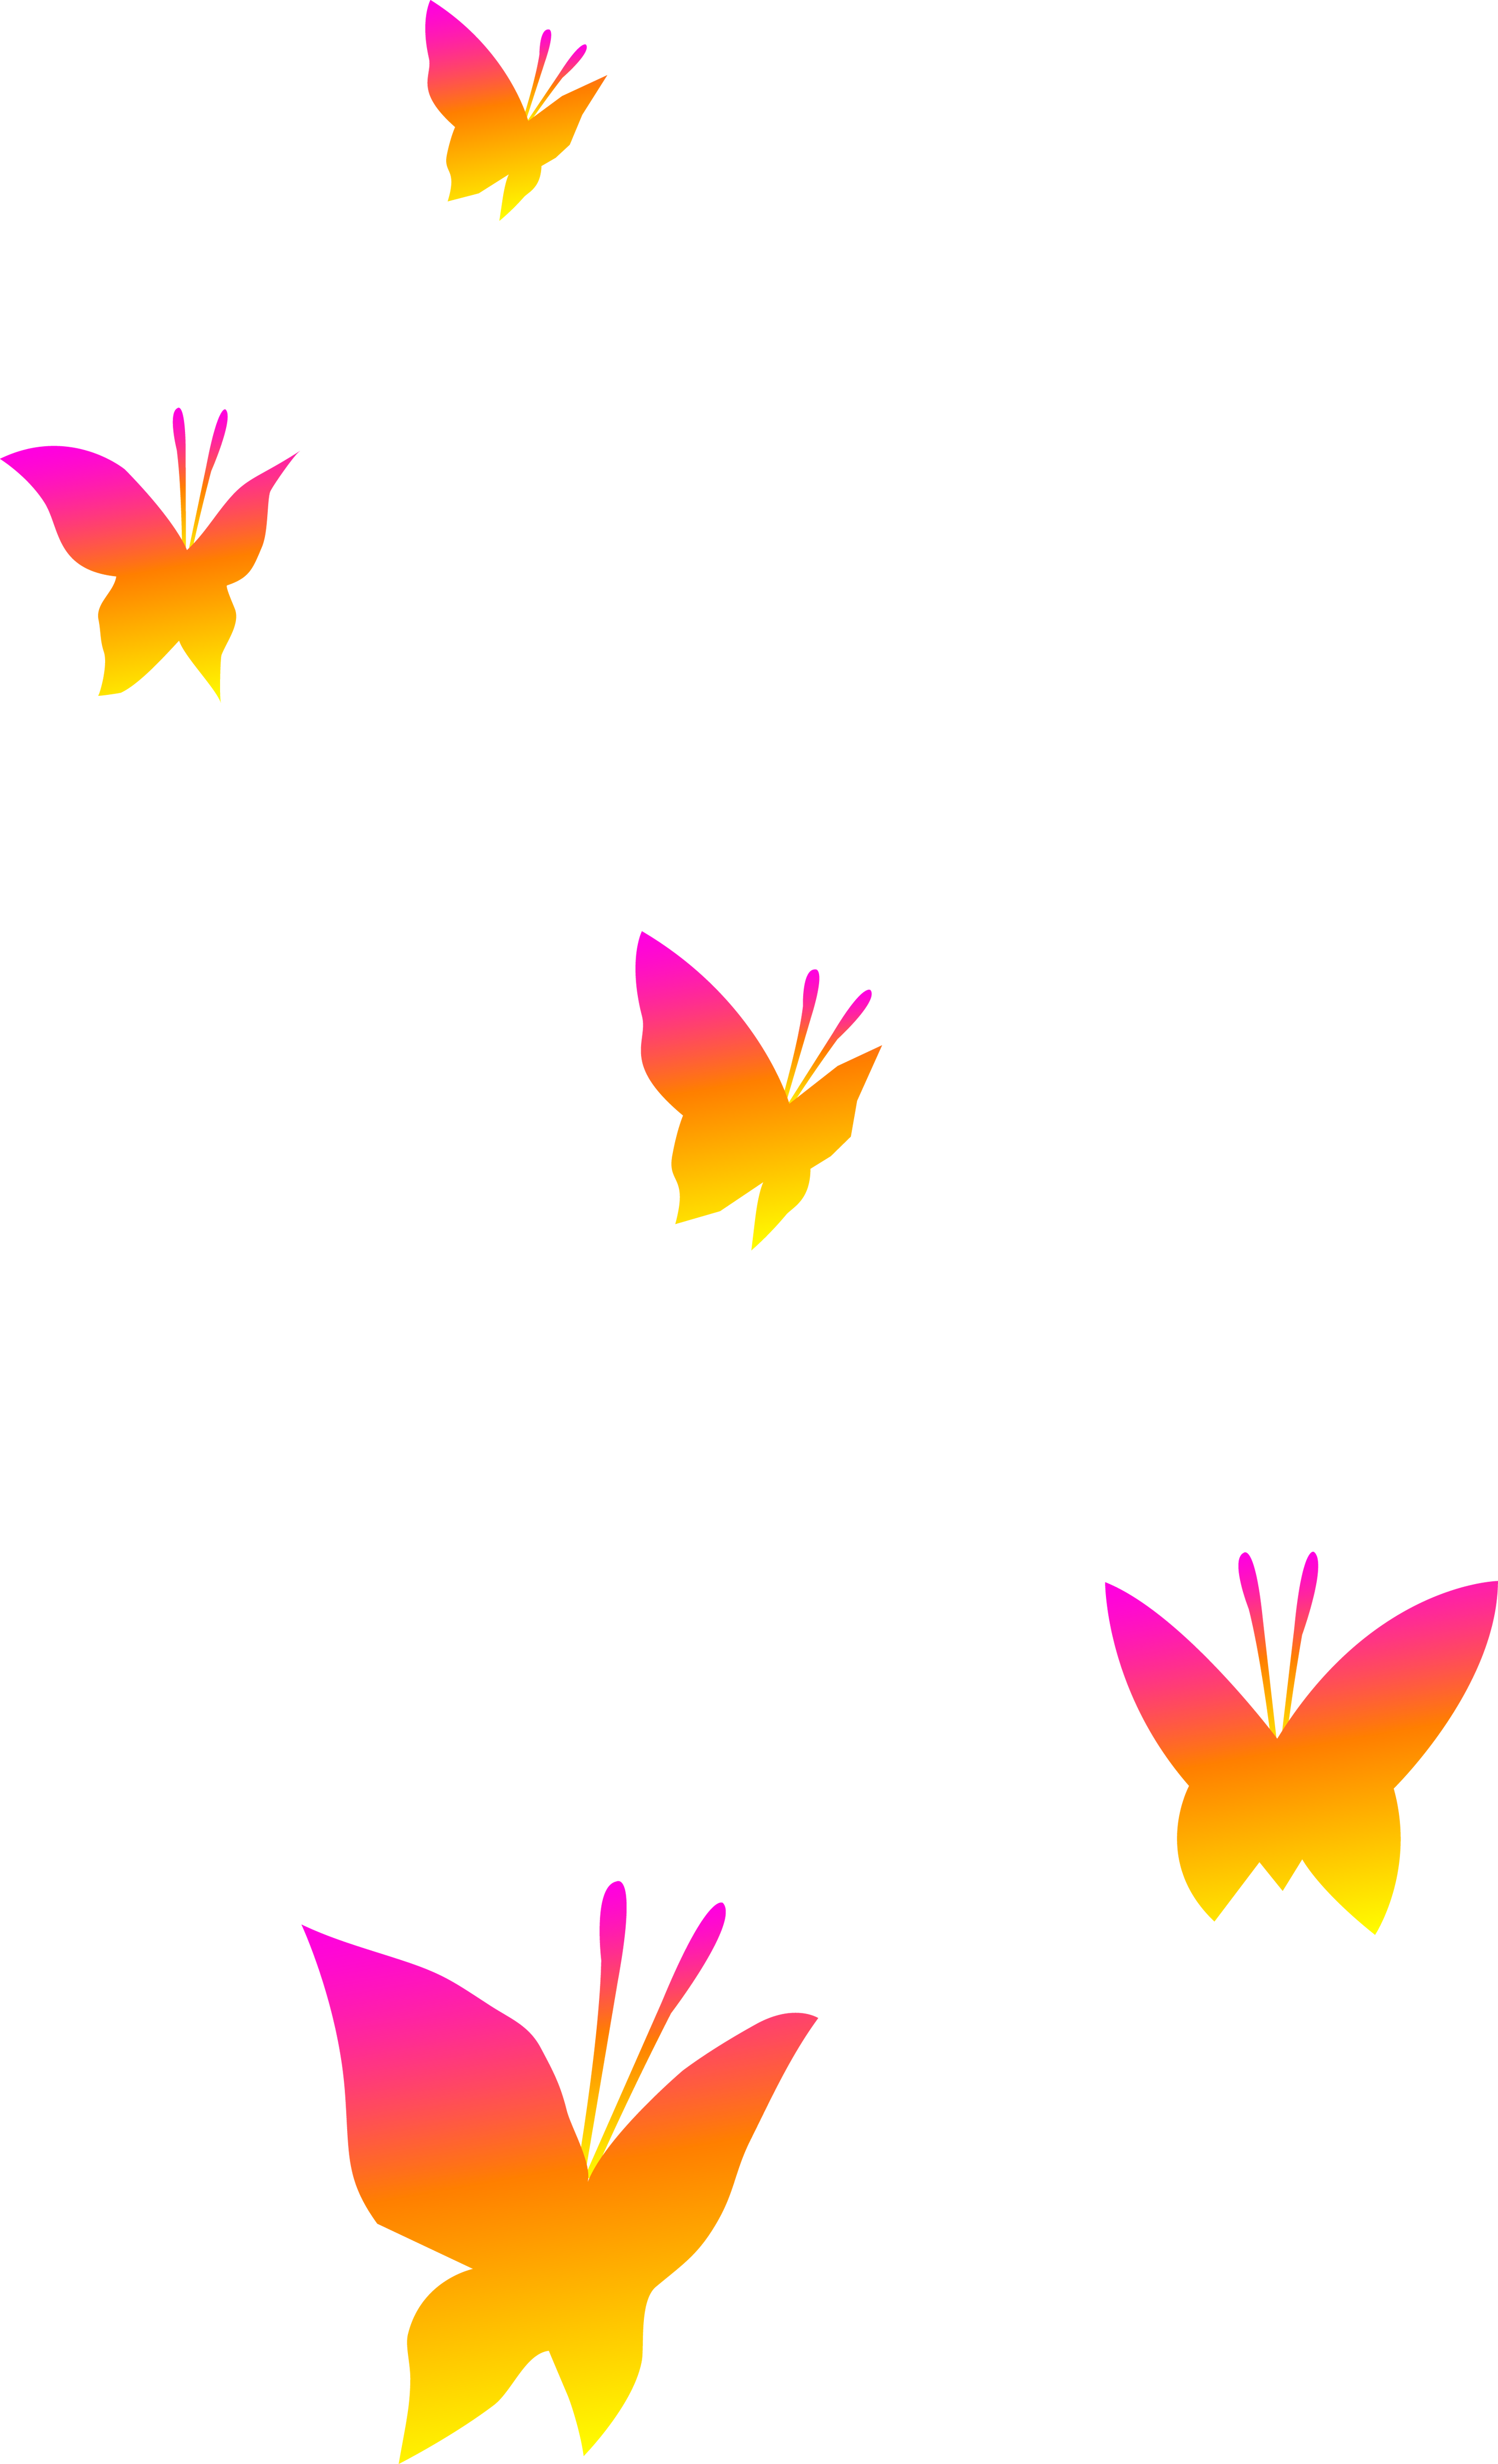 Butterfly Clip Art | Pink Orange And Yel-butterfly clip art | Pink Orange and Yellow Butterflies - Free Clip Art-8